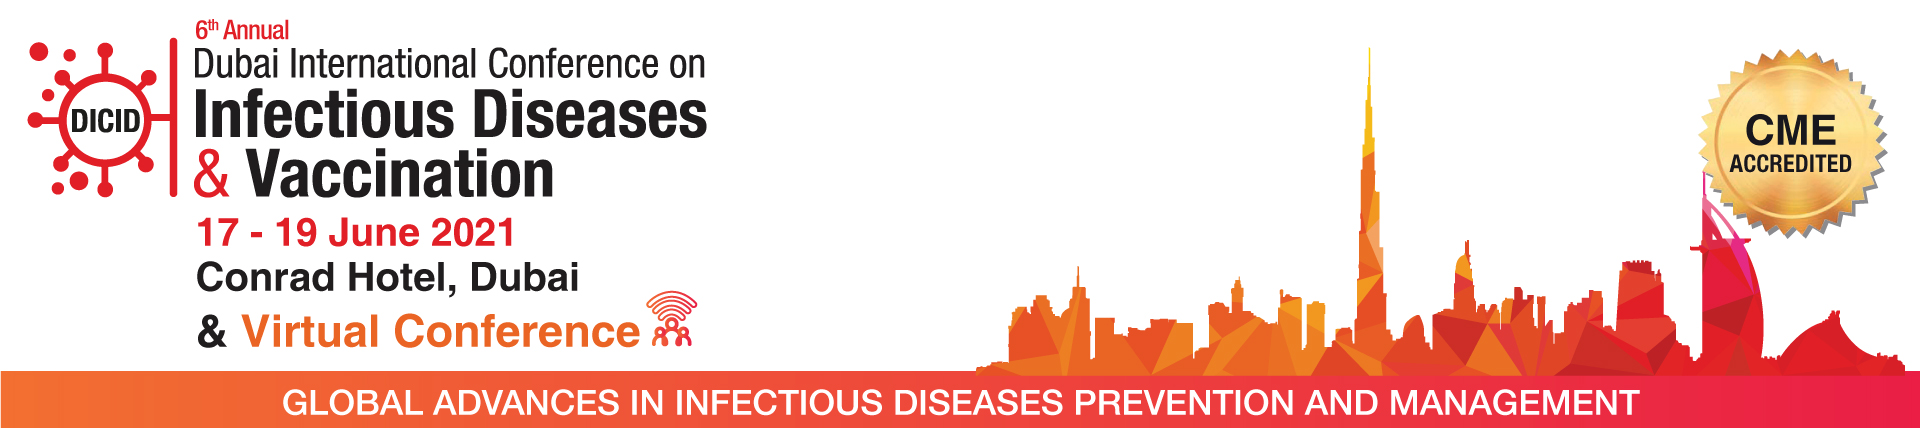 6th Annual Dubai International Conference on Infectious Diseases and Vaccination 2021